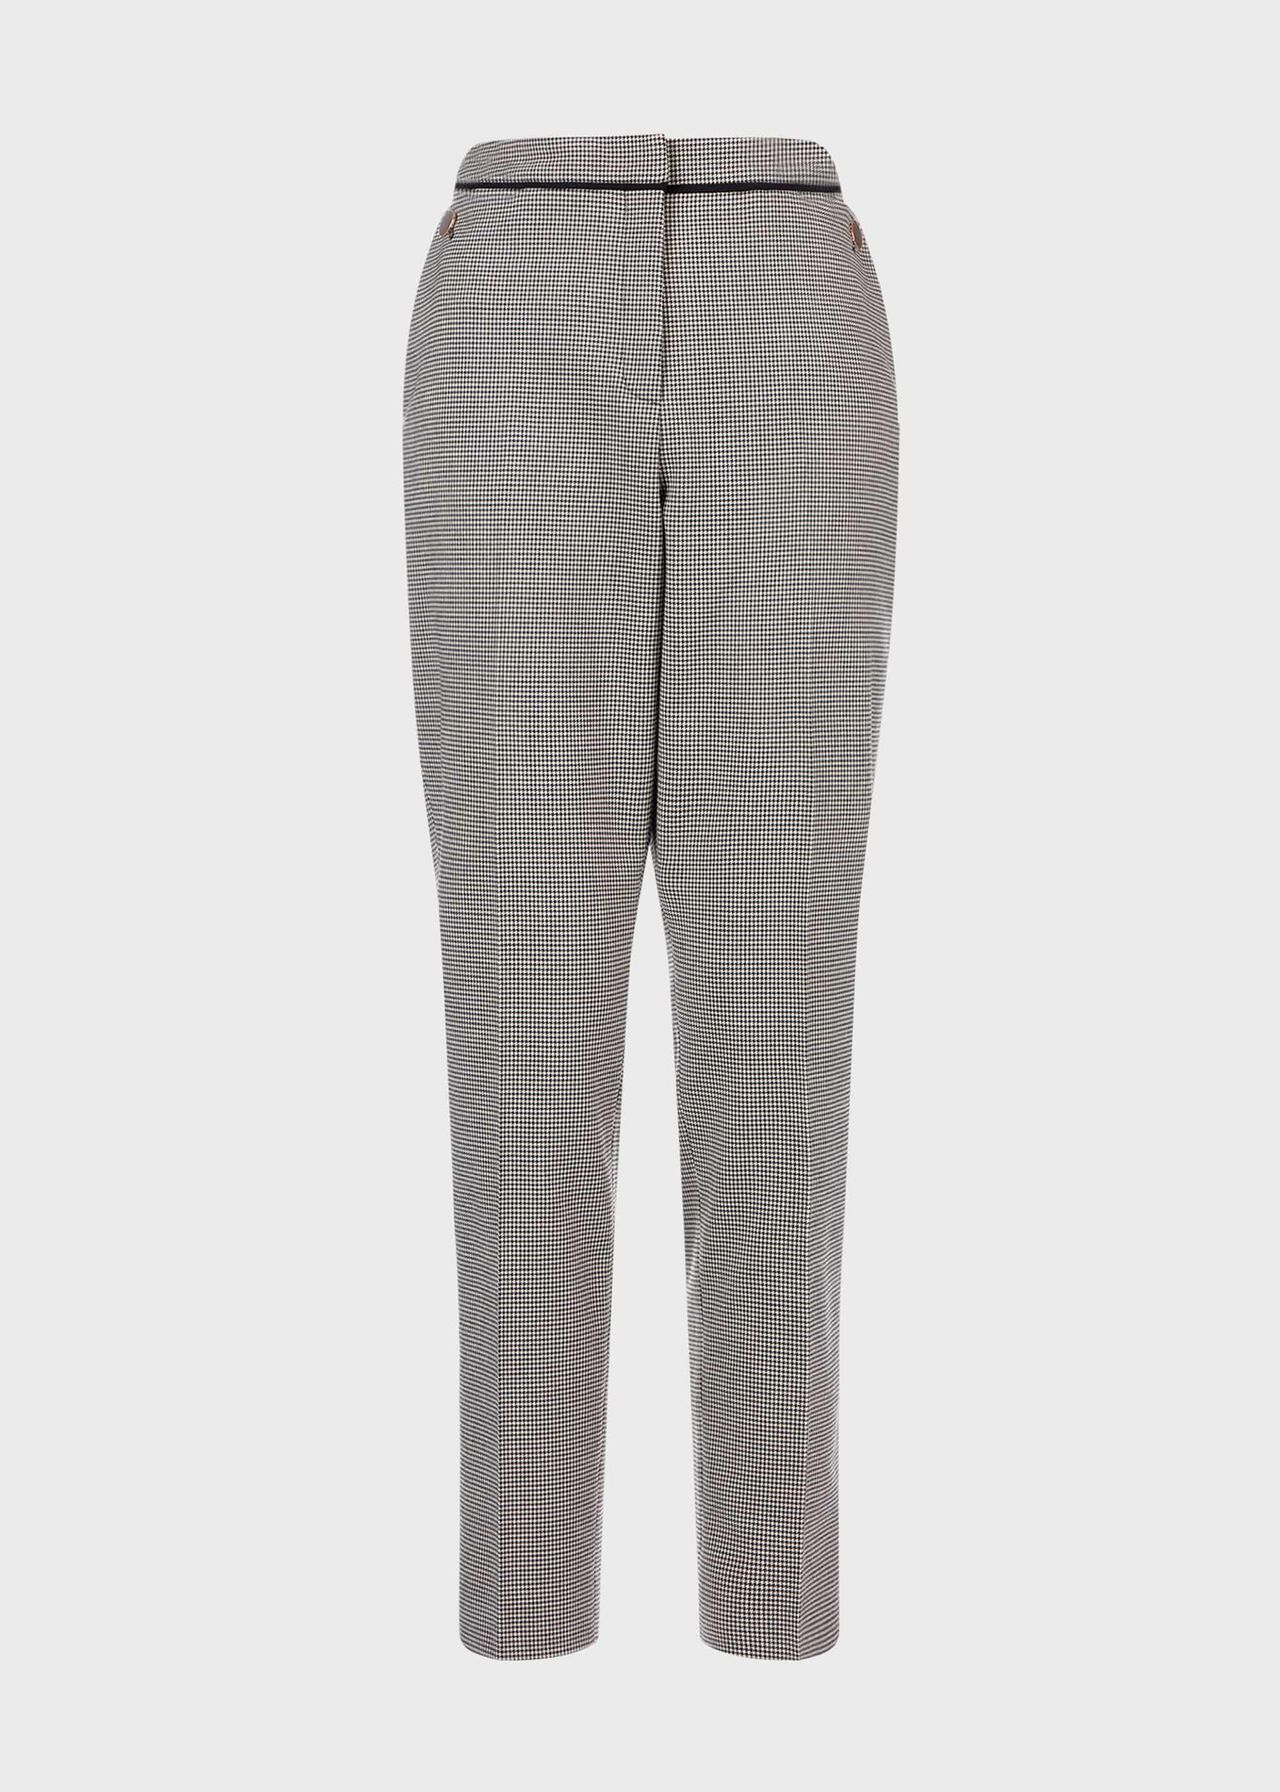 Sienna Houndstooth Slim trousers With Stretch Ivory Black